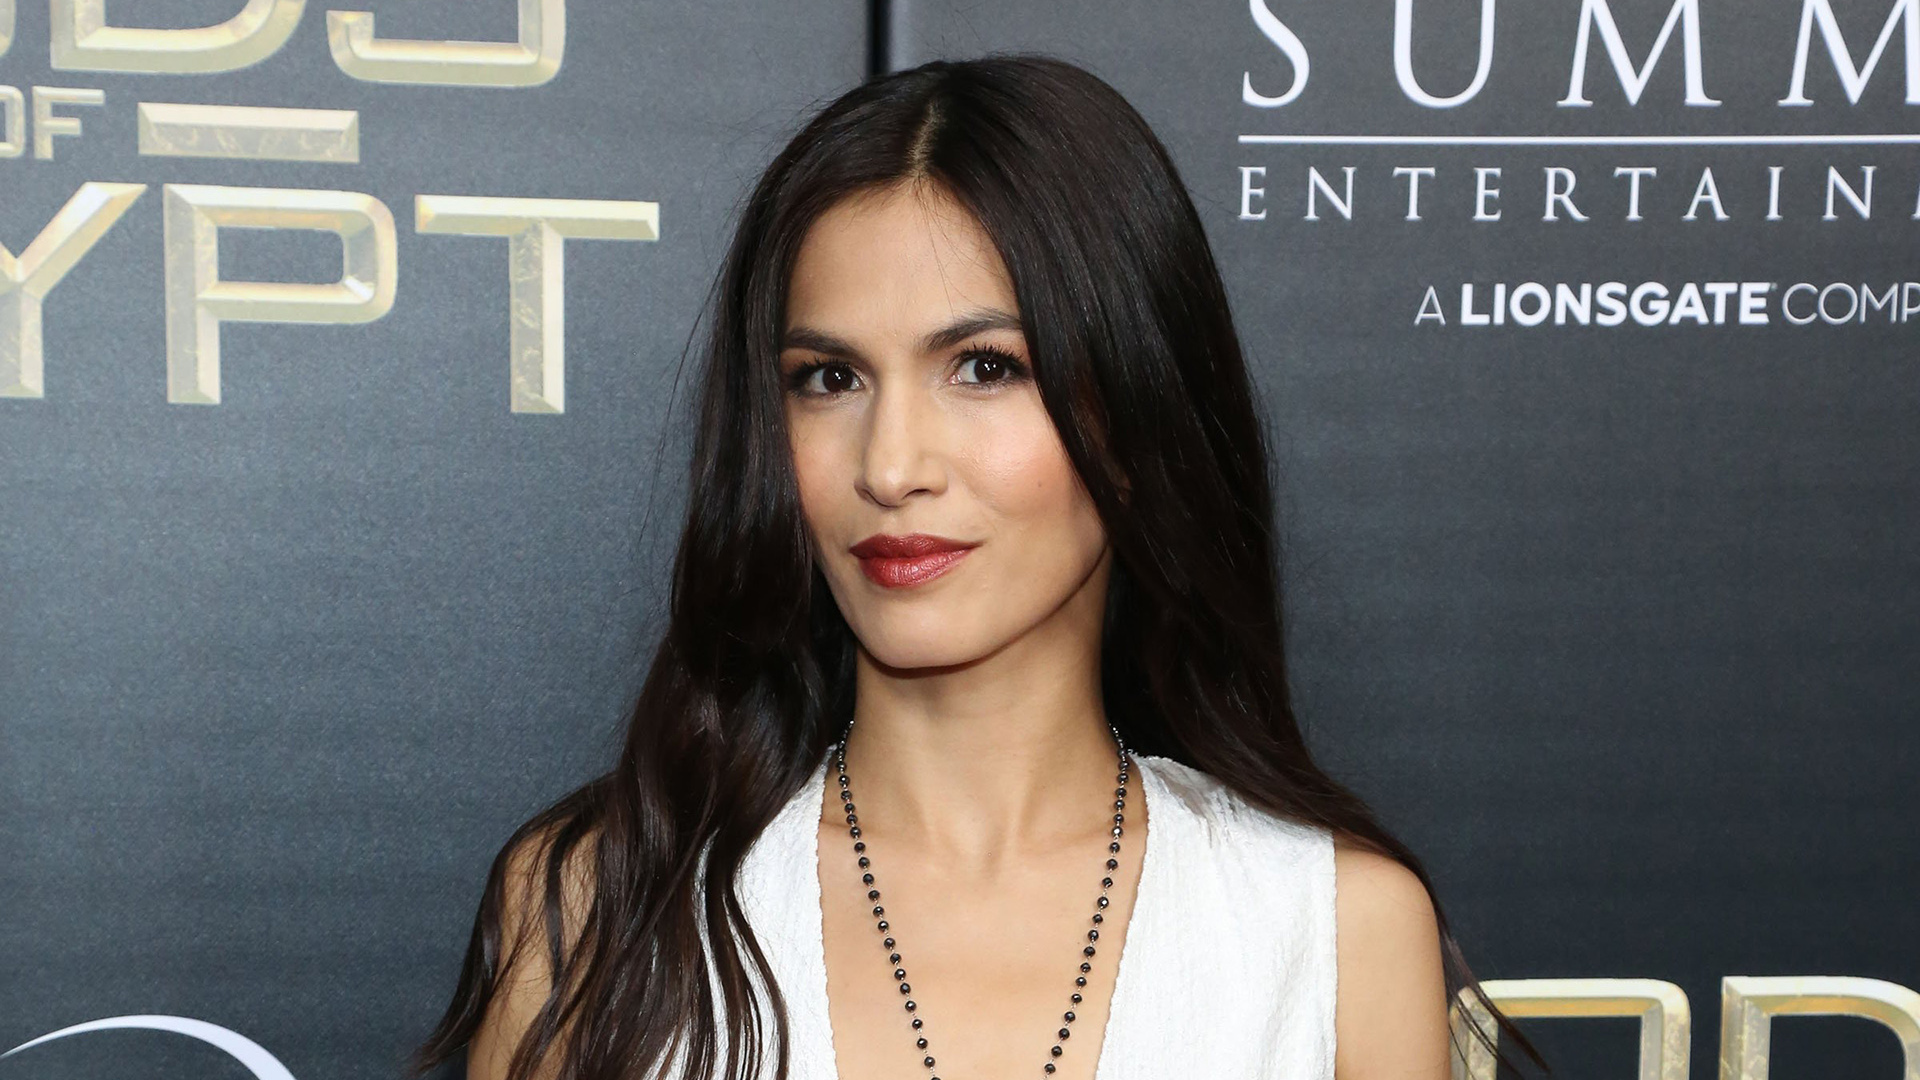 Elodie: Elodie Yung Wallpapers Images Photos Pictures Backgrounds